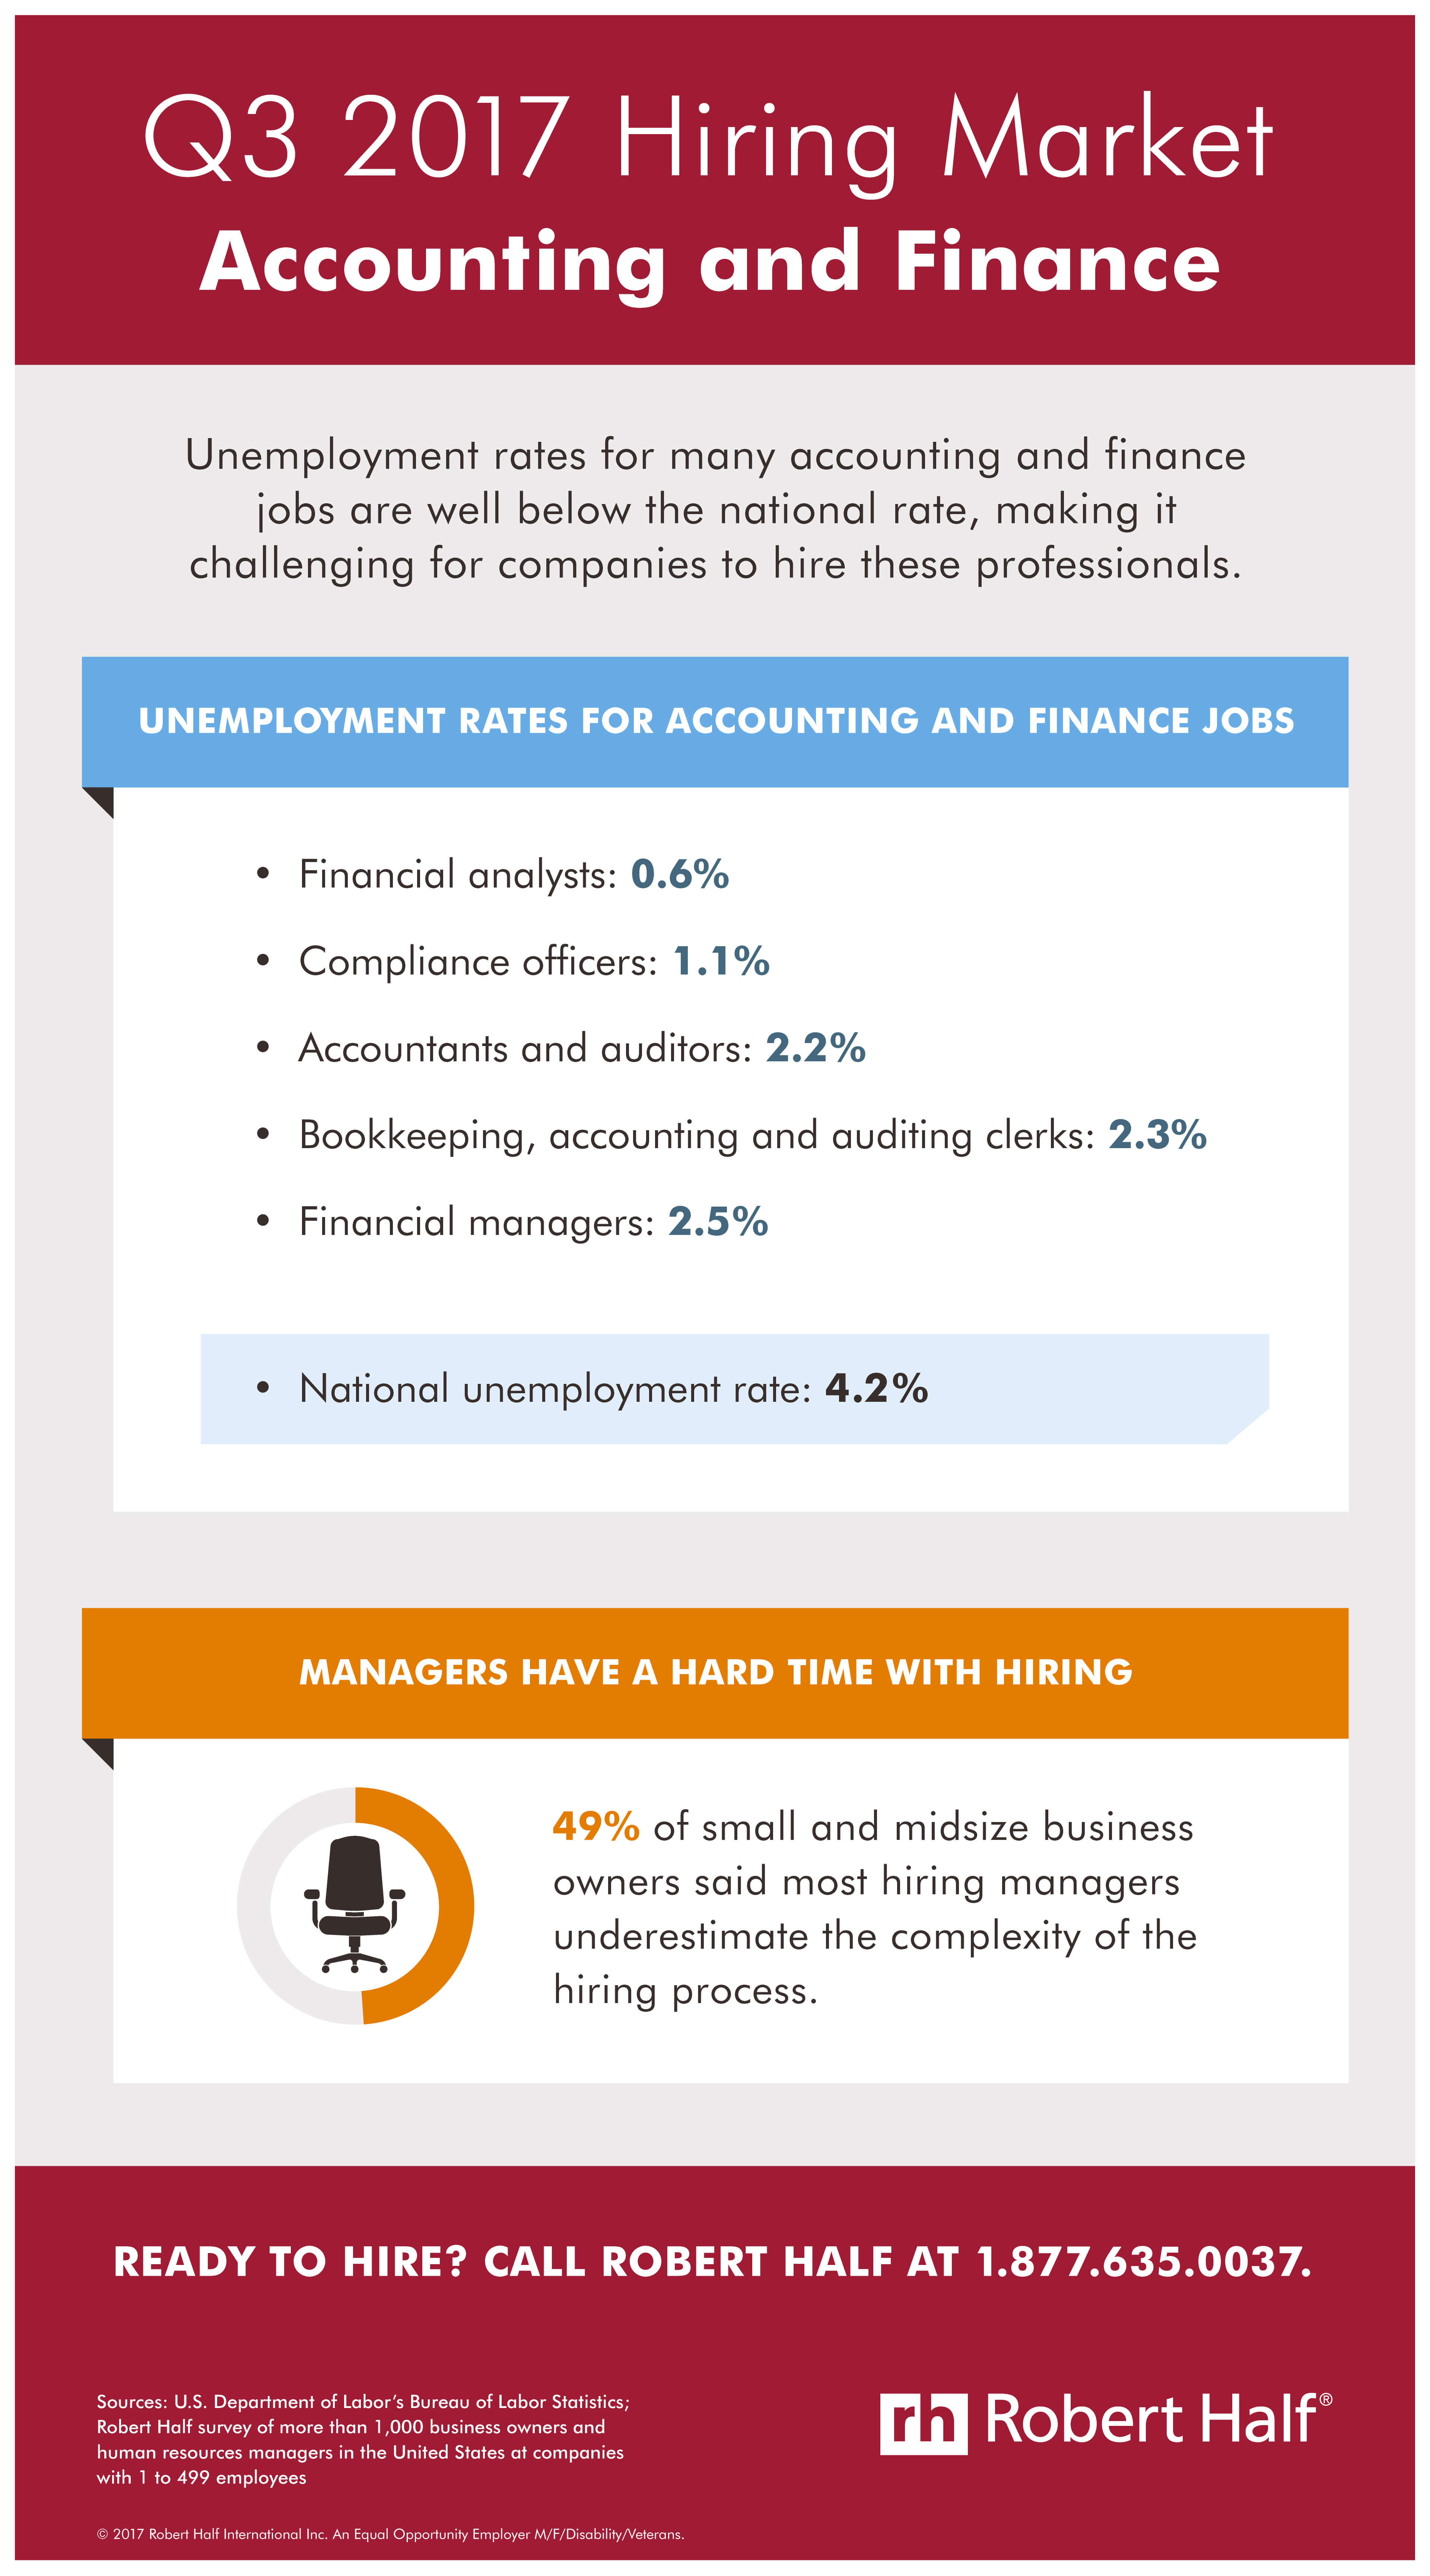 Infographic showing the Q3 hiring market Accounting and Finance field